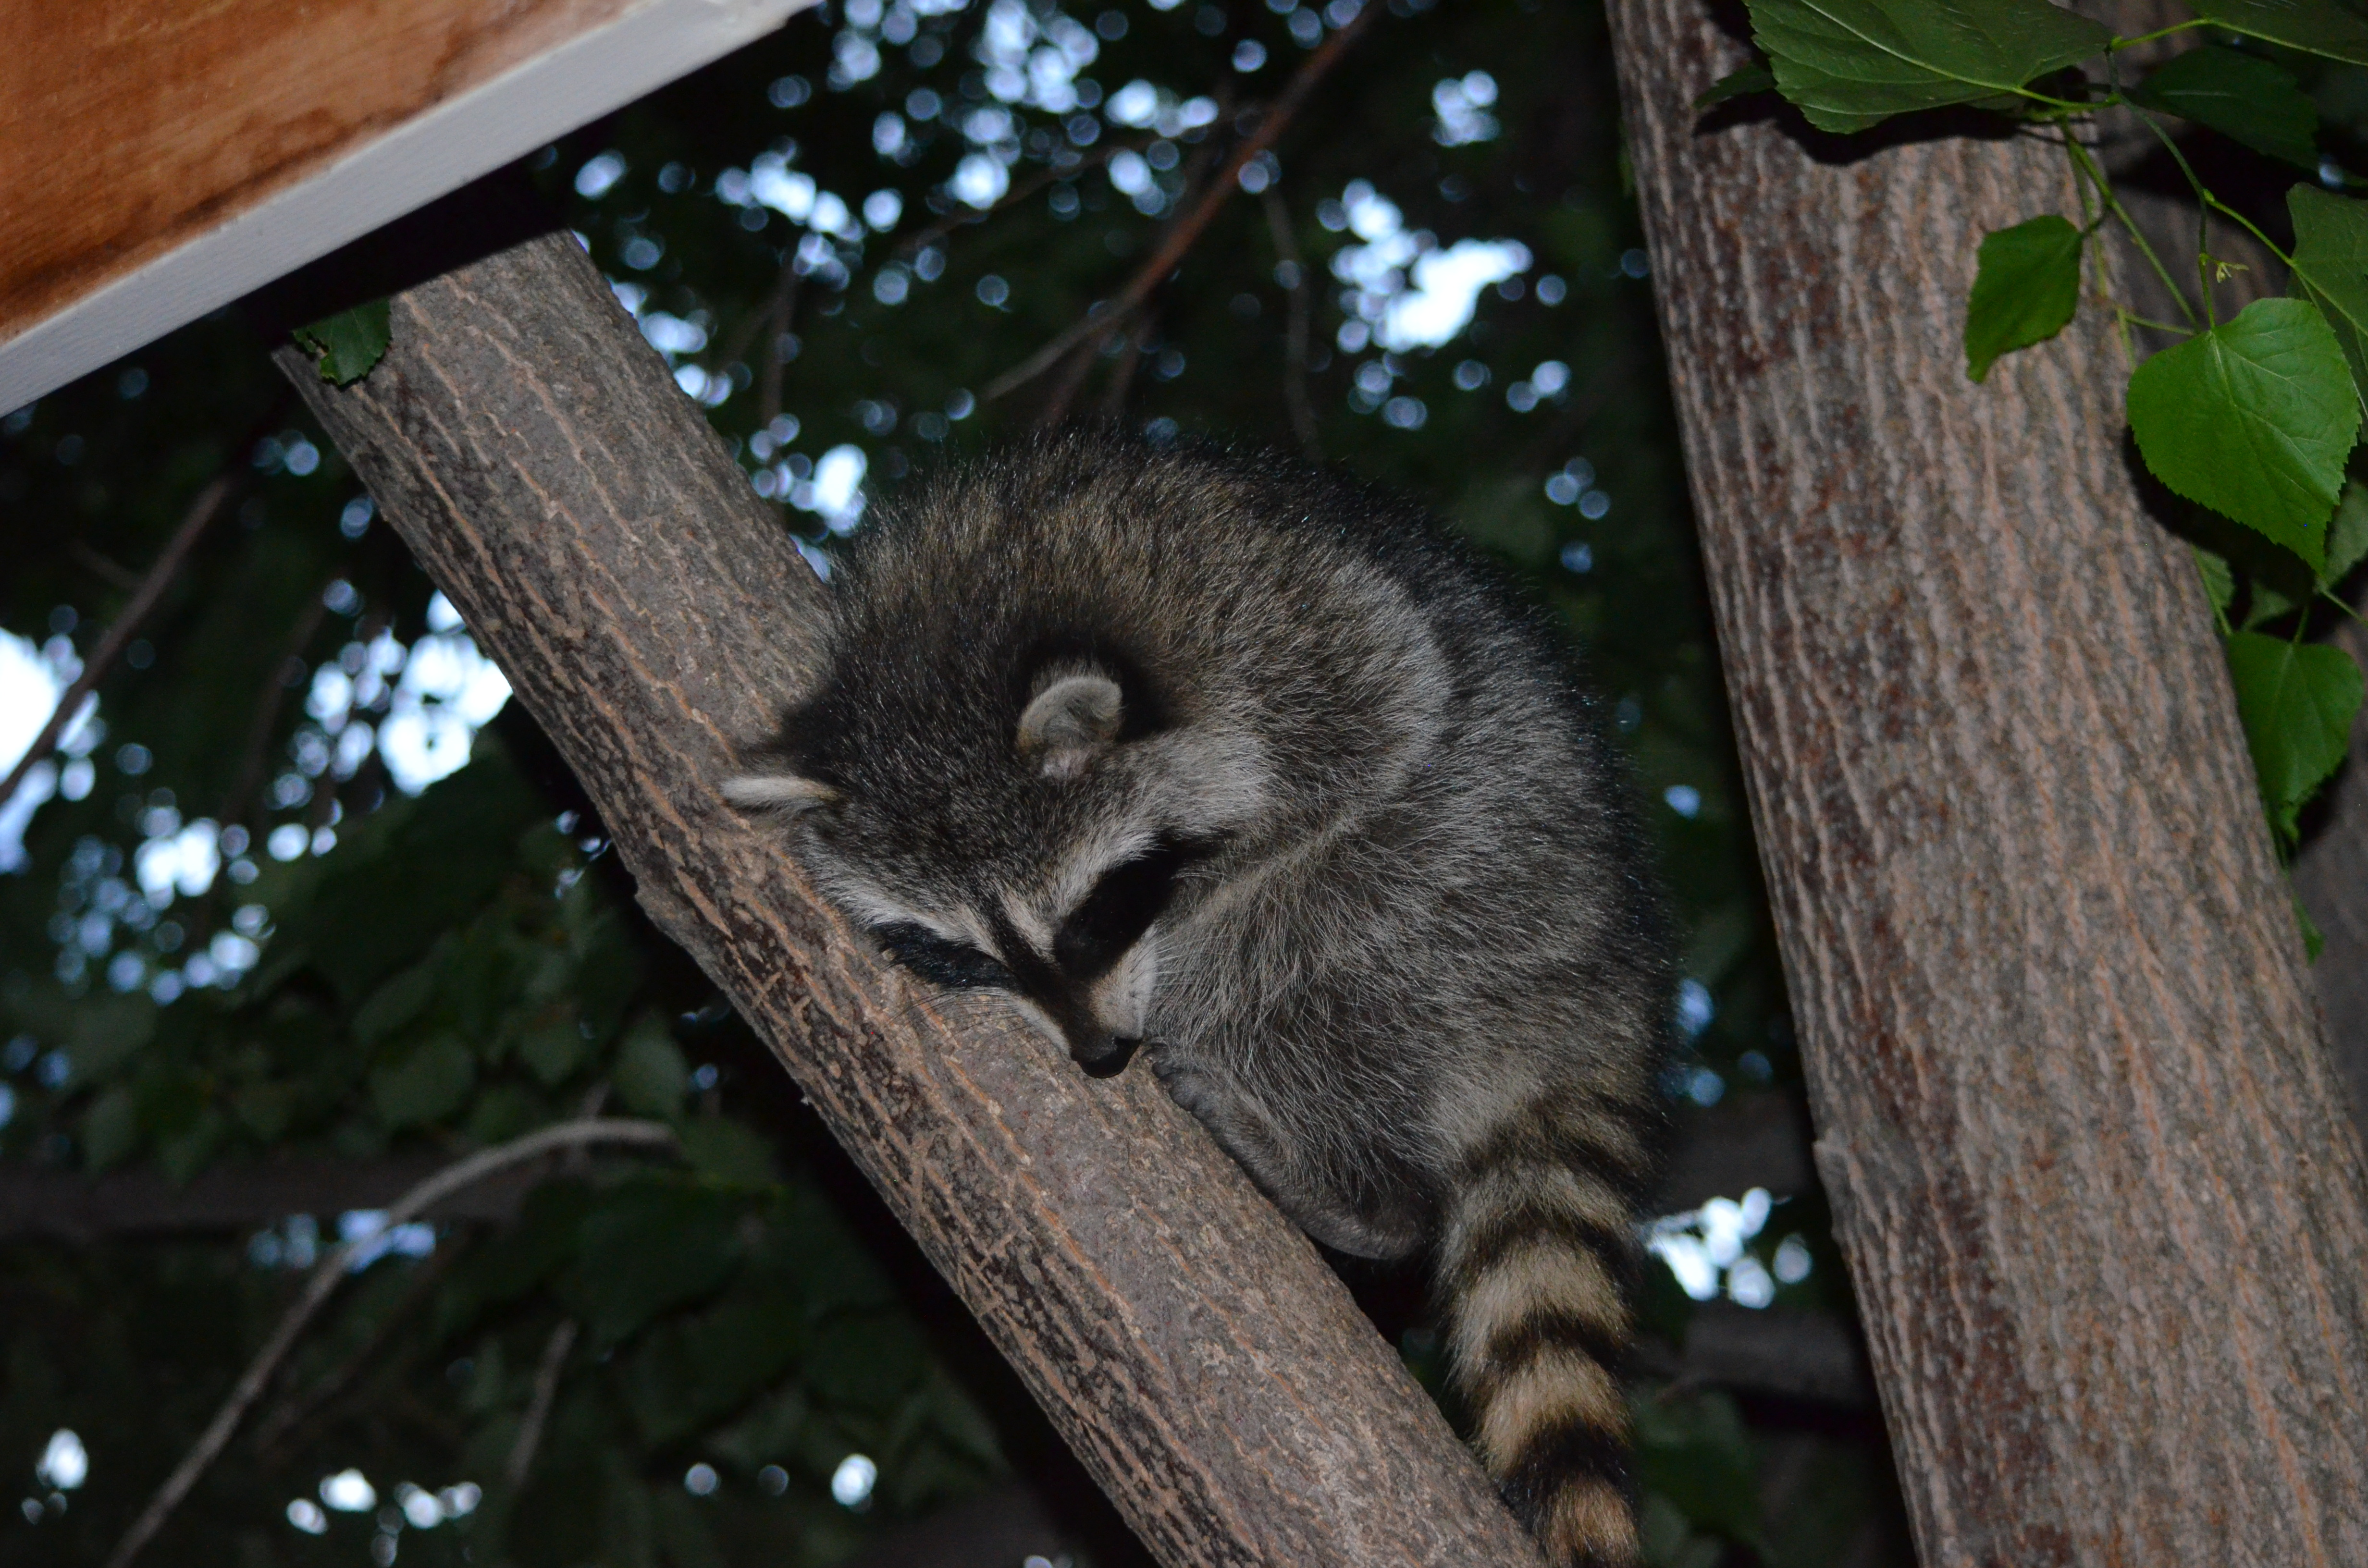 FIVE BABY RACCOONS IN MY TREE IN MY BACK YARD TONIGHT